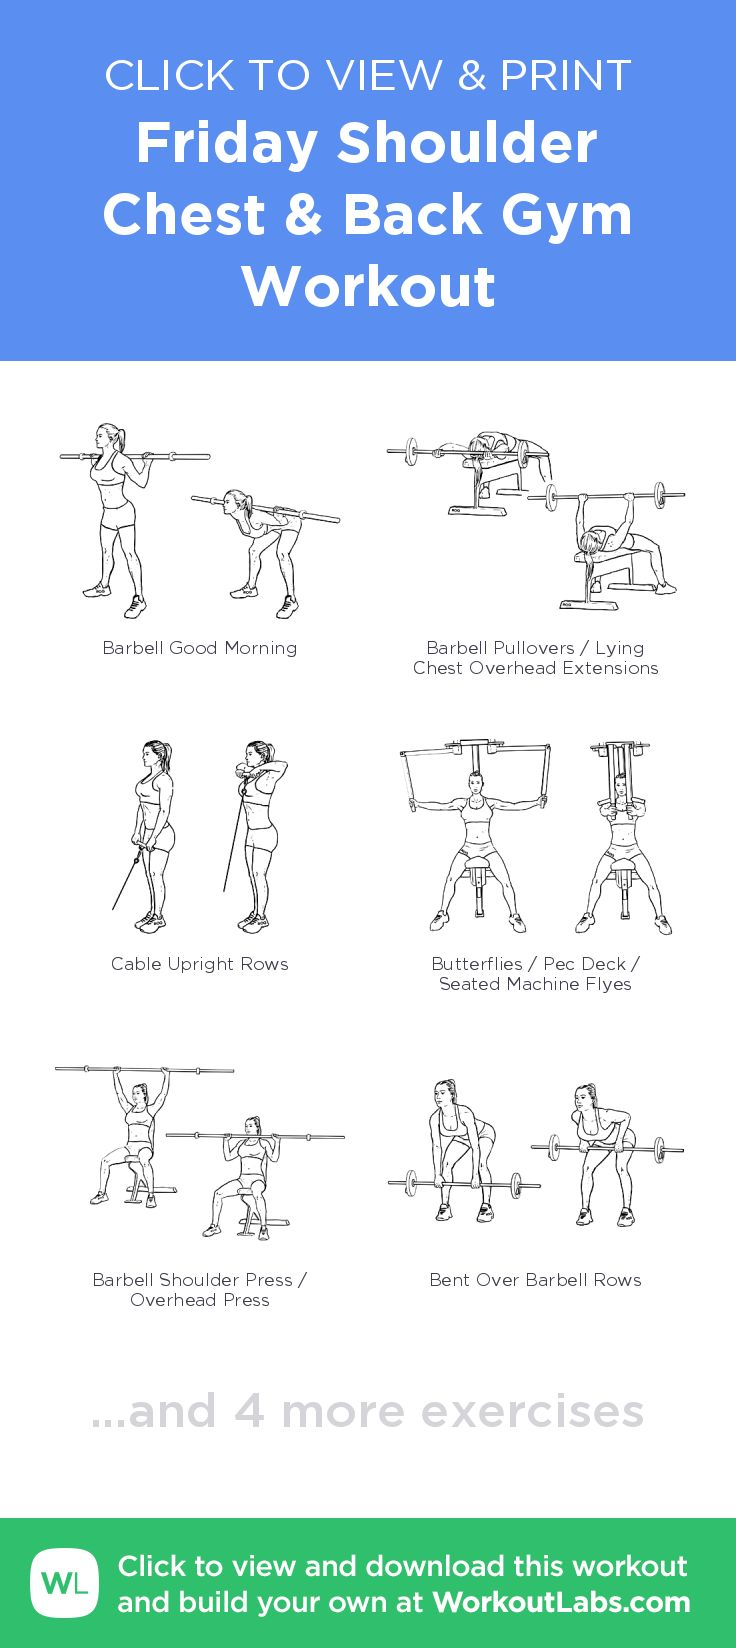 Friday Shoulder Chest & Back Gym Workout – click to view and print this illus… – Work out videos